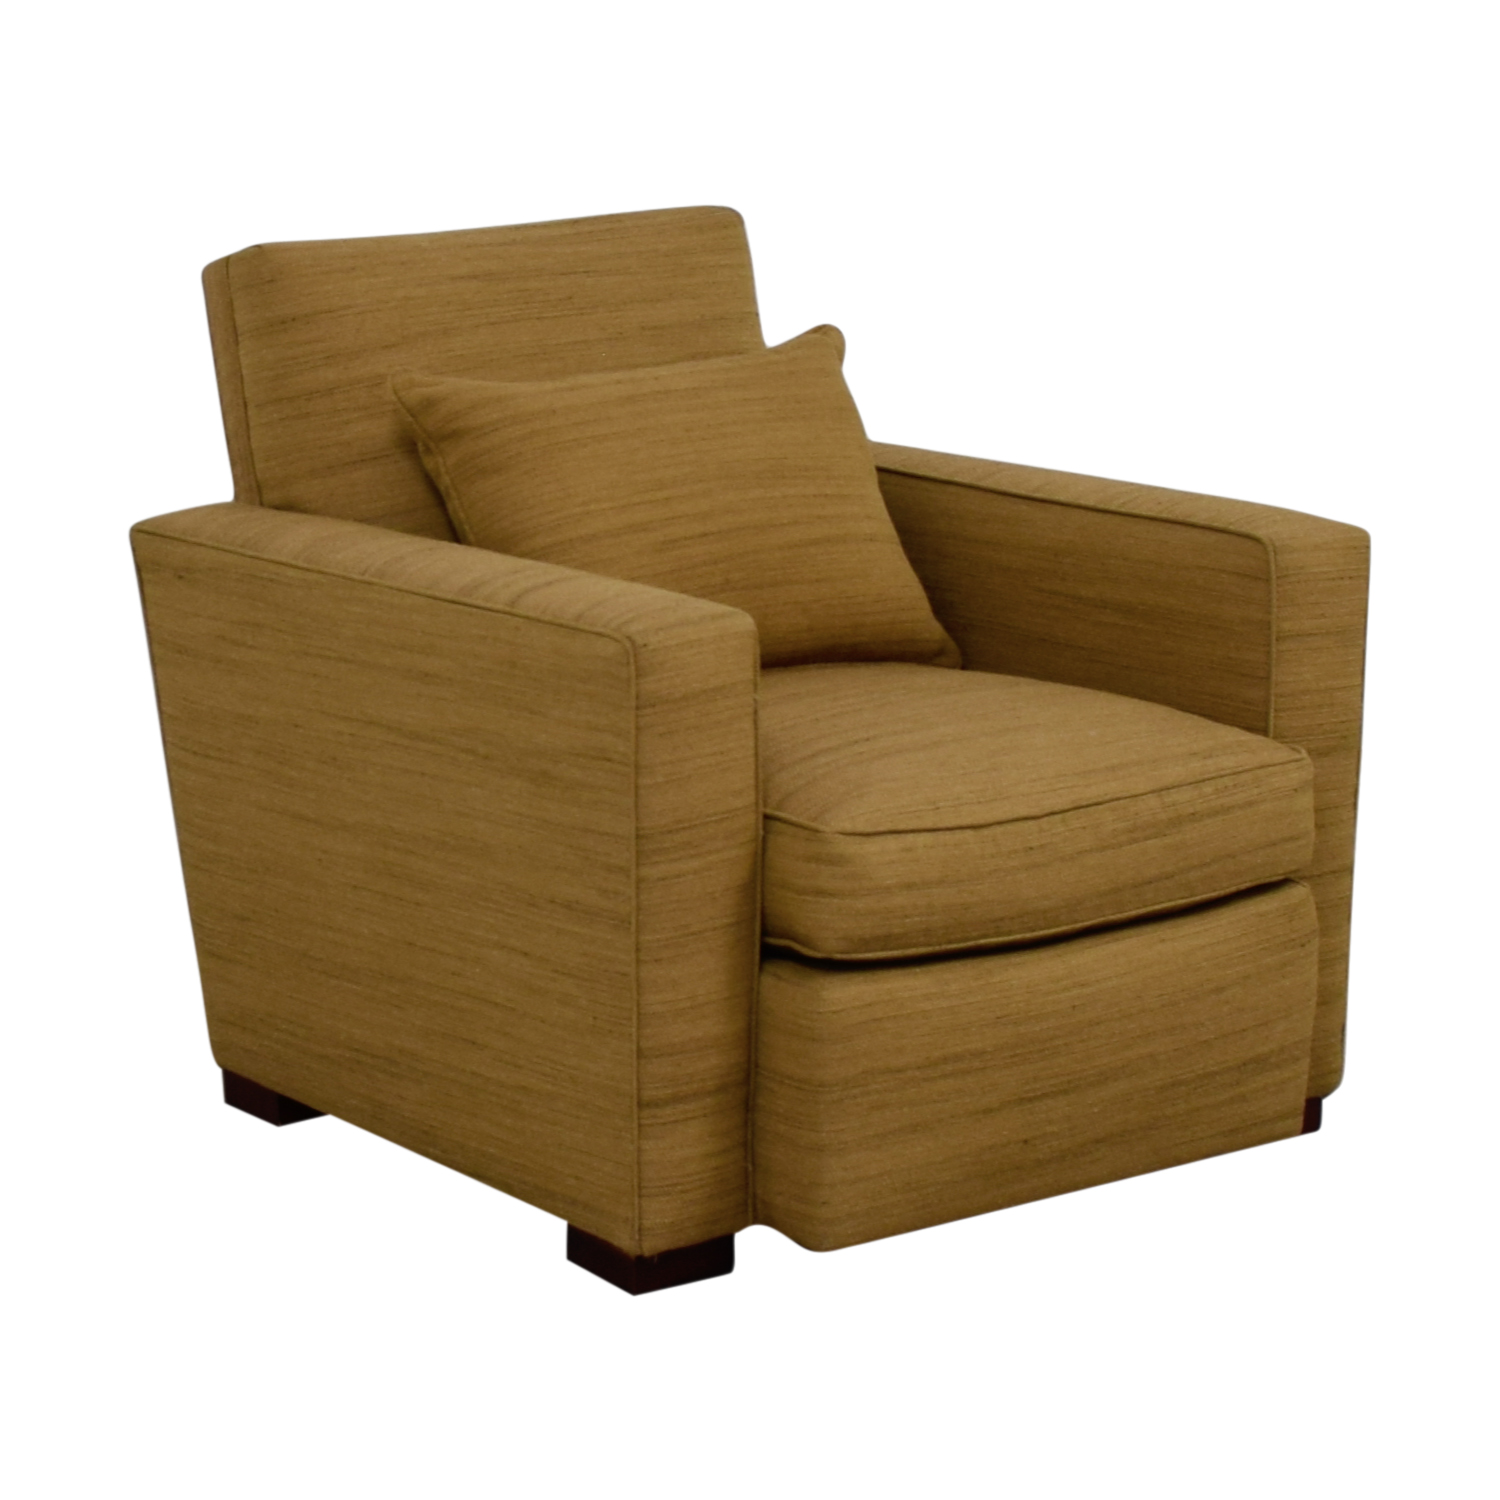 Amazing 90 Off Hickory Chair Hickory Chair Classic Modern Club Chair Chairs Gamerscity Chair Design For Home Gamerscityorg